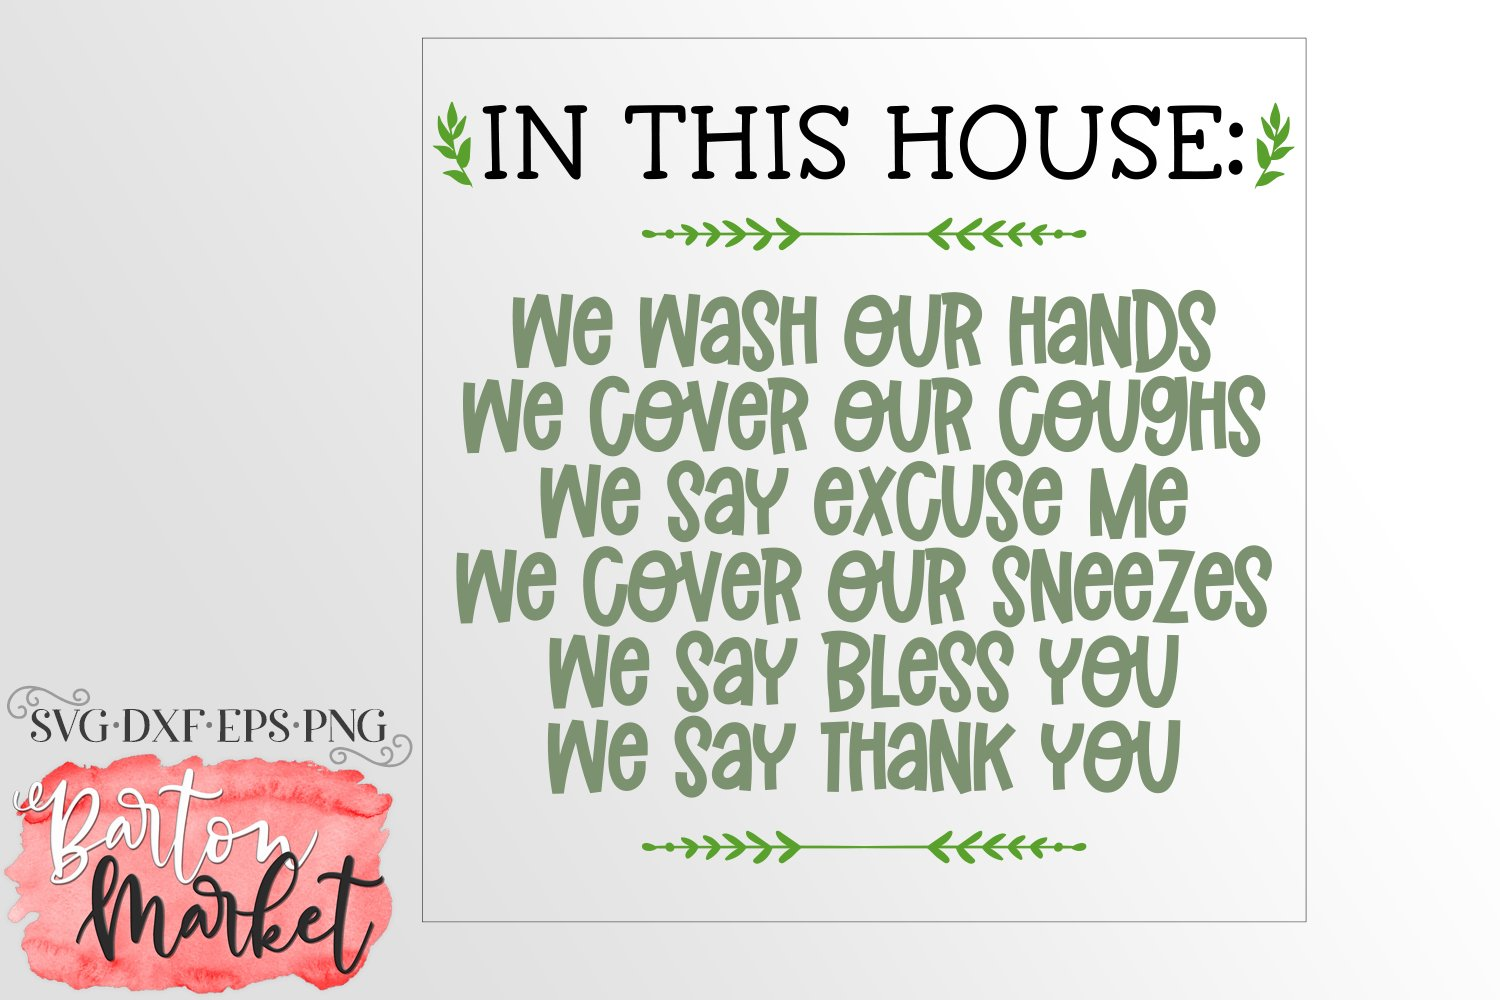 In This House We Wash Our Hands SVG DXF EPS PNG example image 2